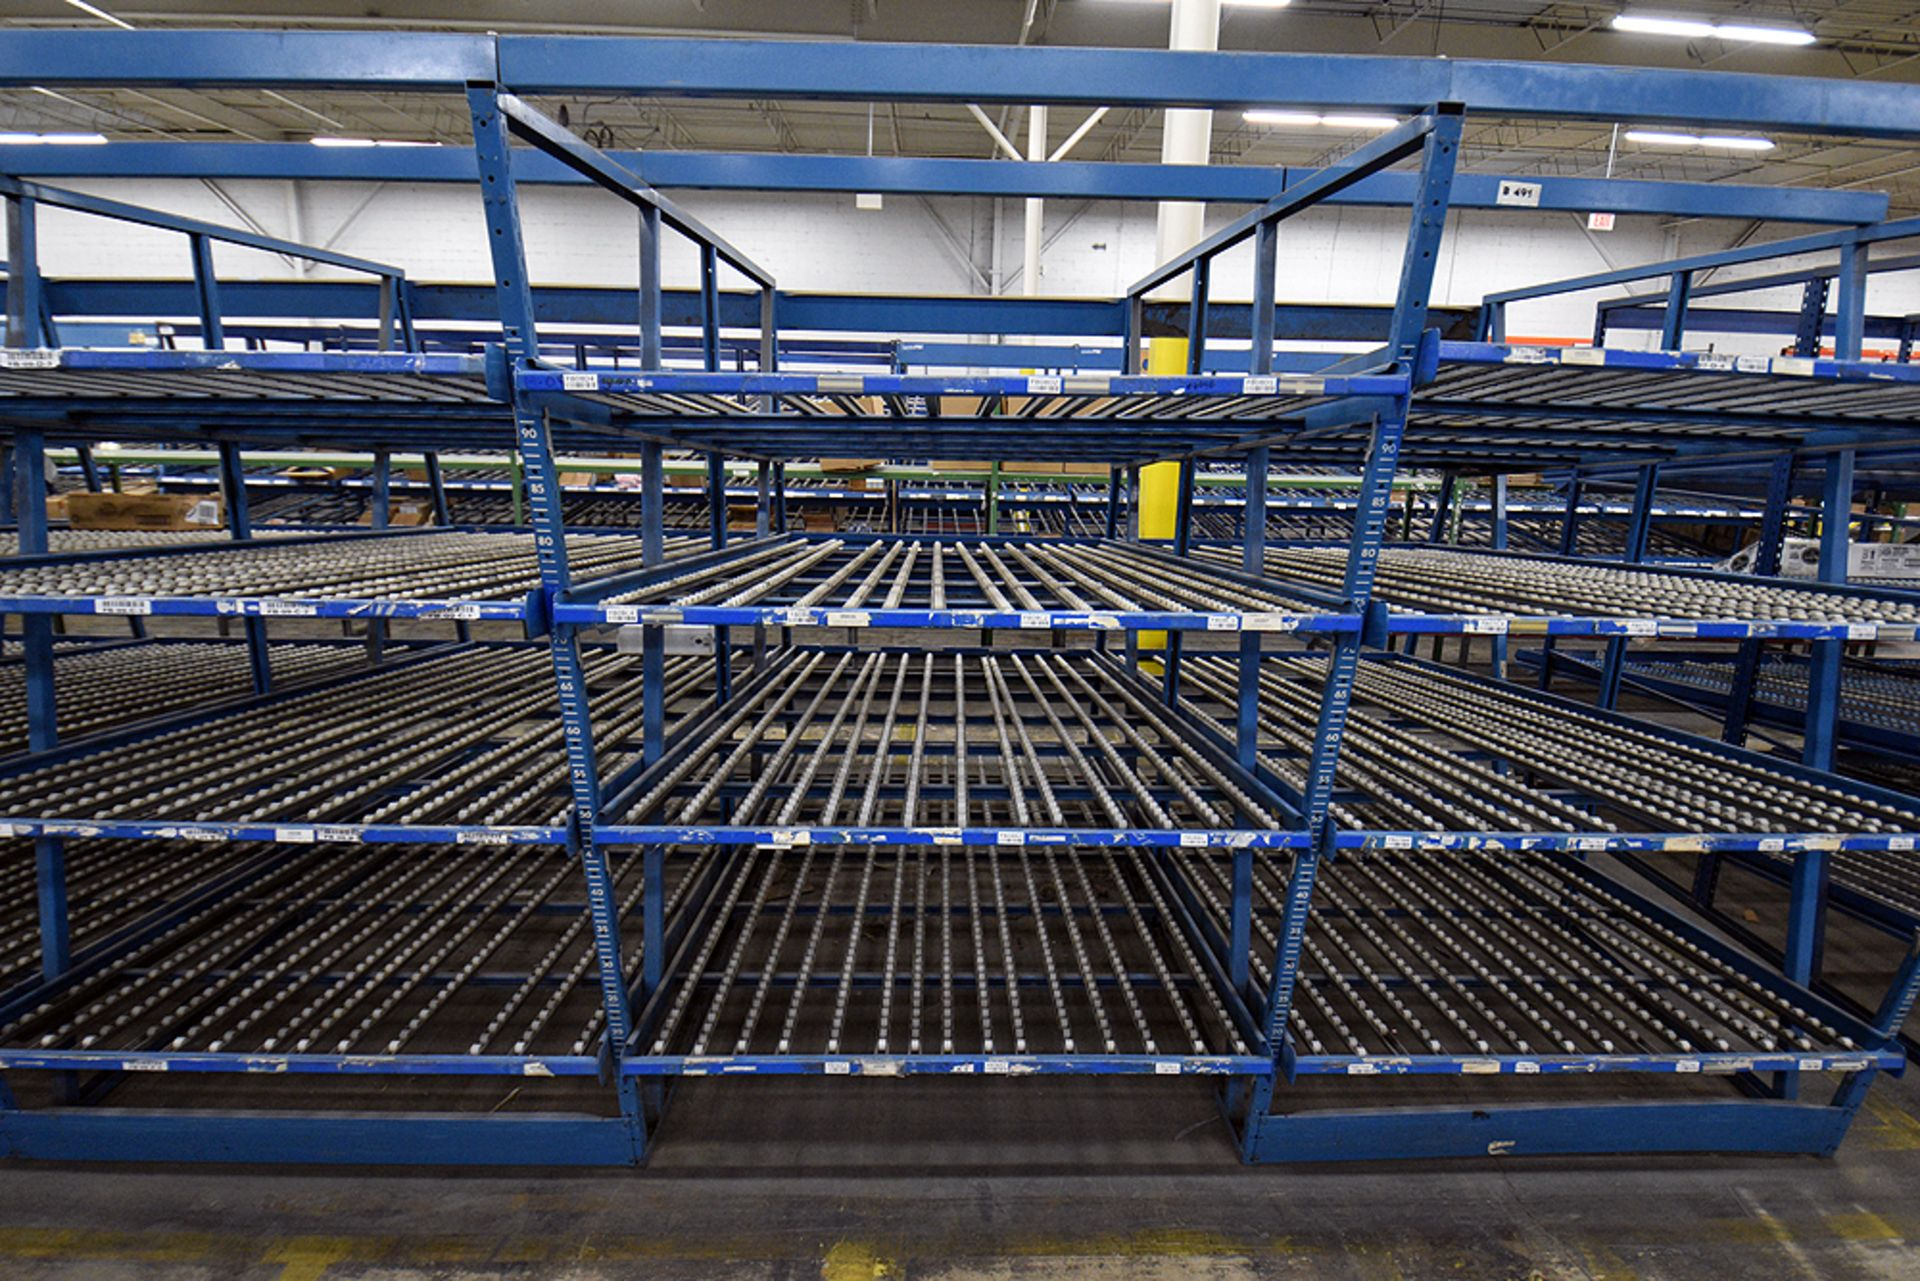 """4-Tier Gravity Fed, Carton Flow Rack (116""""x624""""x95""""H) (108""""x1"""" Rollers) - Image 2 of 4"""